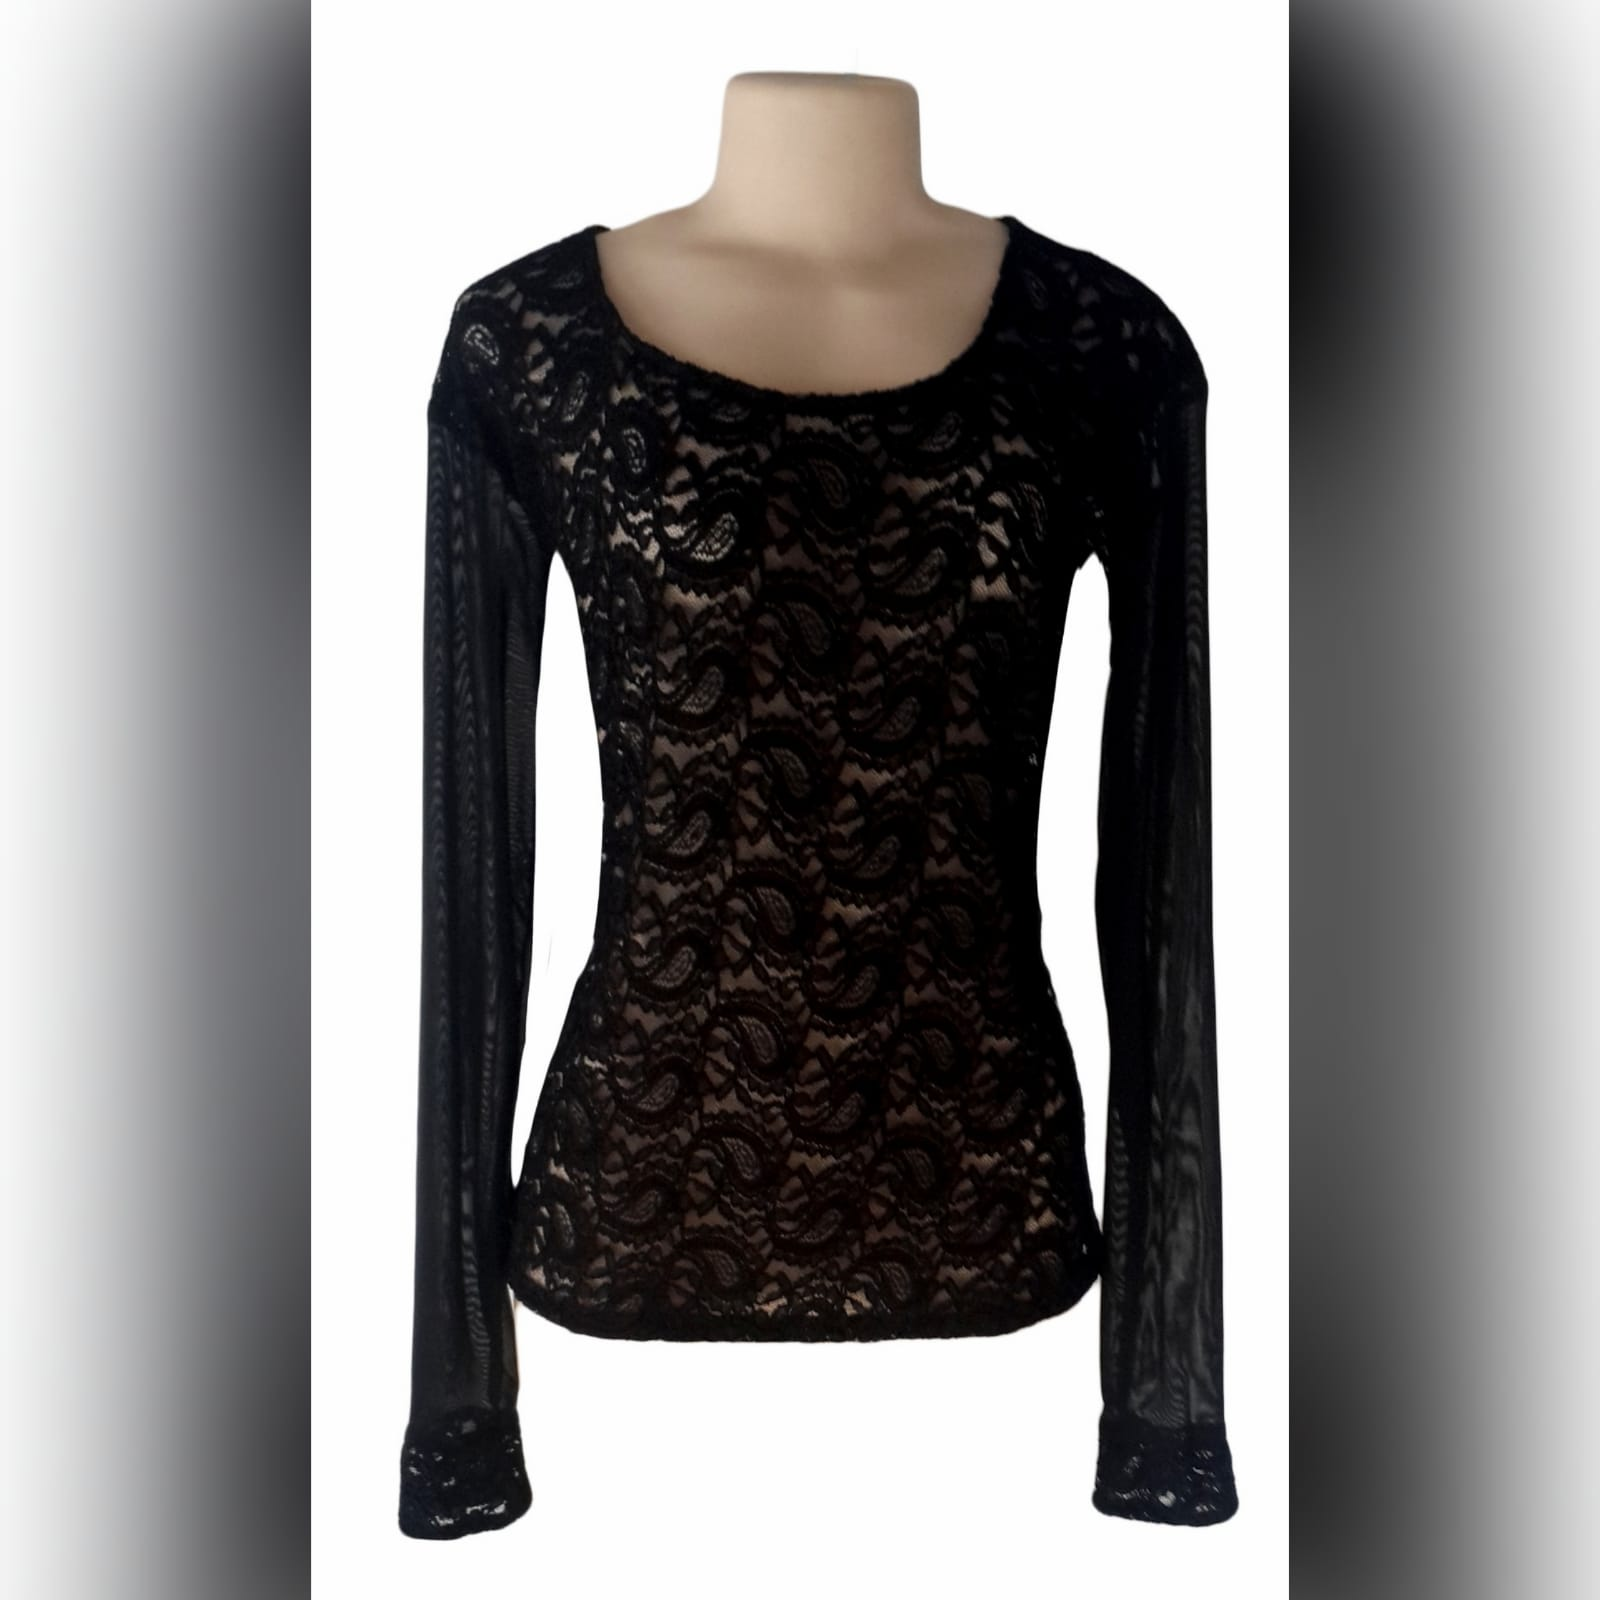 Black sheer lace long sleeve top 3 black sheer lace, long sleeve matric after party, smart casual top